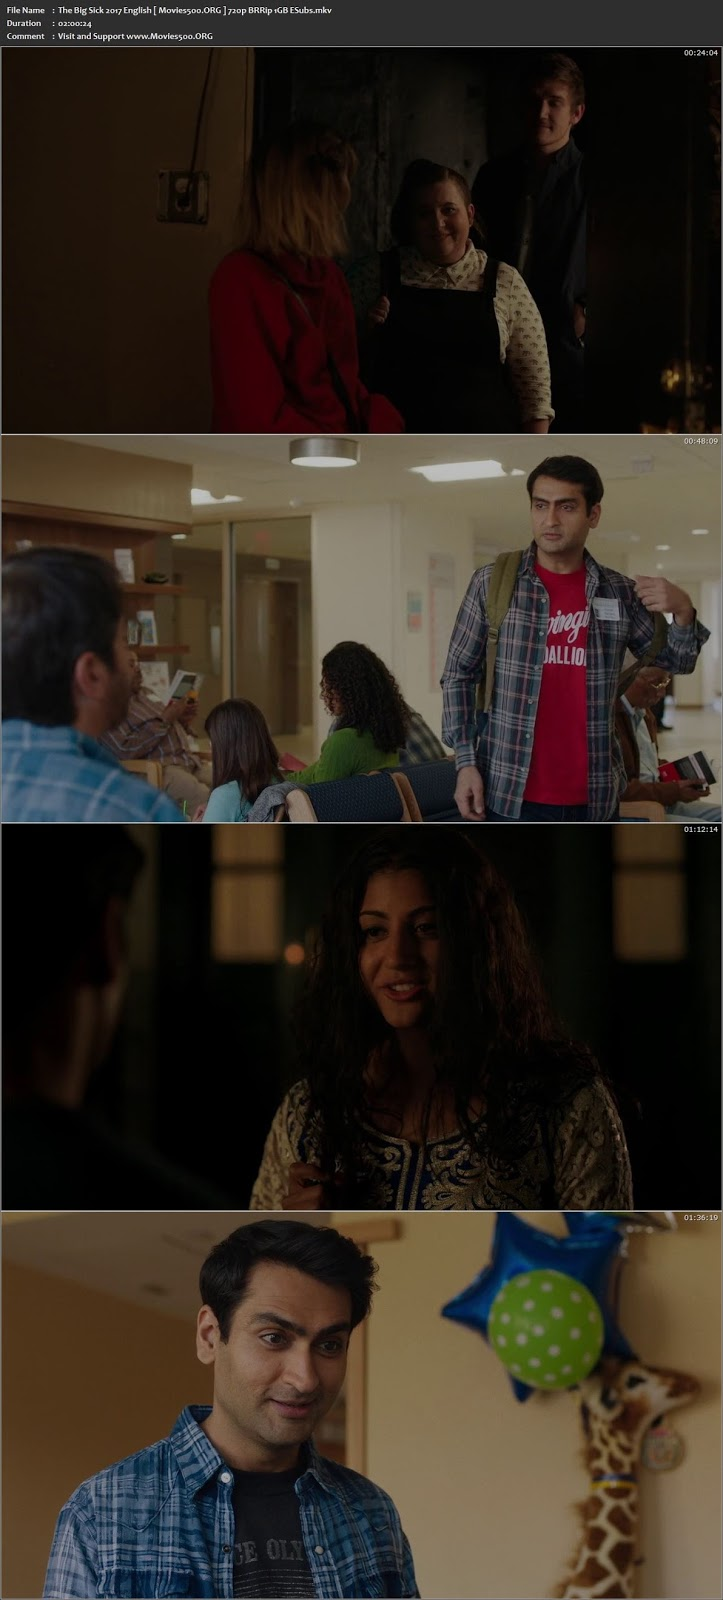 The Big Sick 2017 English Download BRRip 720p ESubs at xcharge.net